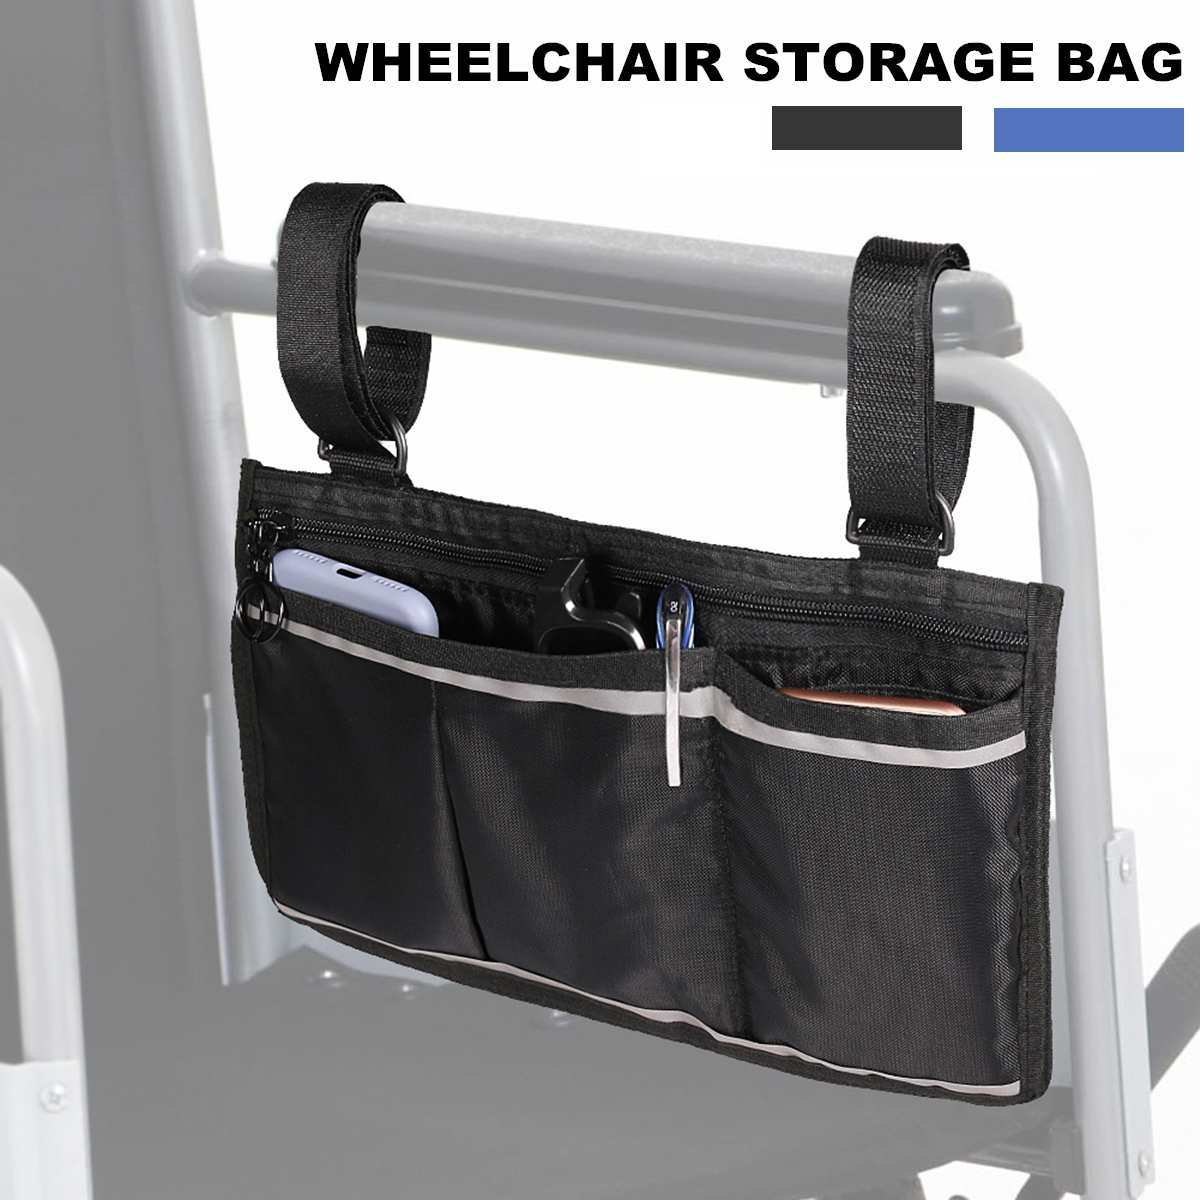 1 Style Black Mobile Cup Holder and Storage Pockets for Walkers Strollers Wheelchairs